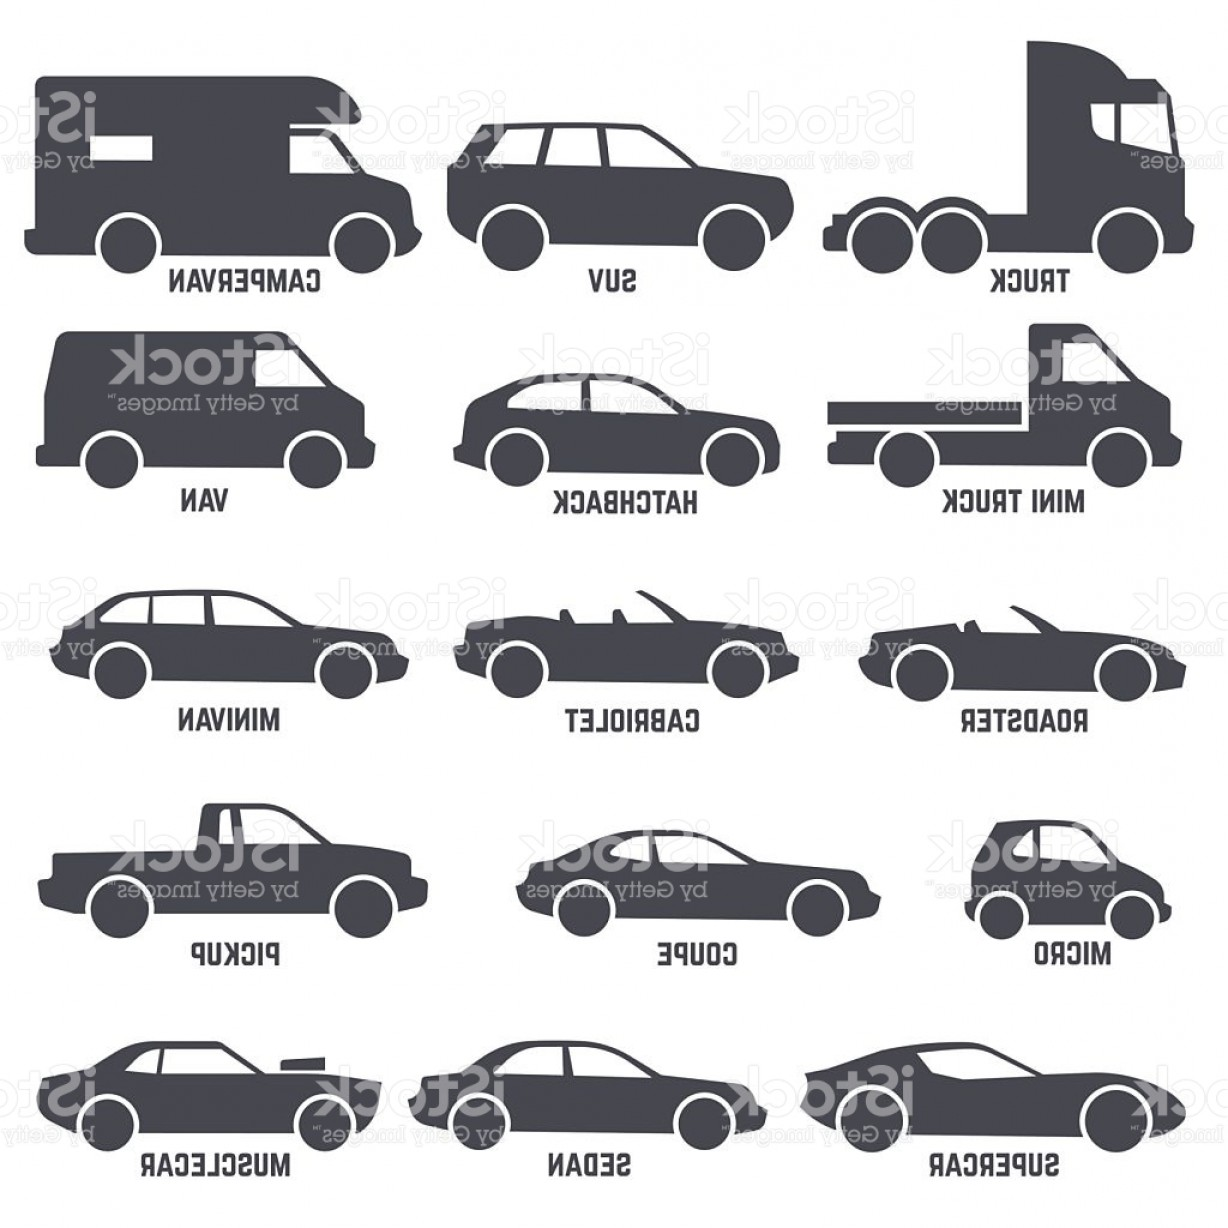 Auto Mobile Vector Art: Car Automobile Types Black Vector Icons Isolated On White Gm